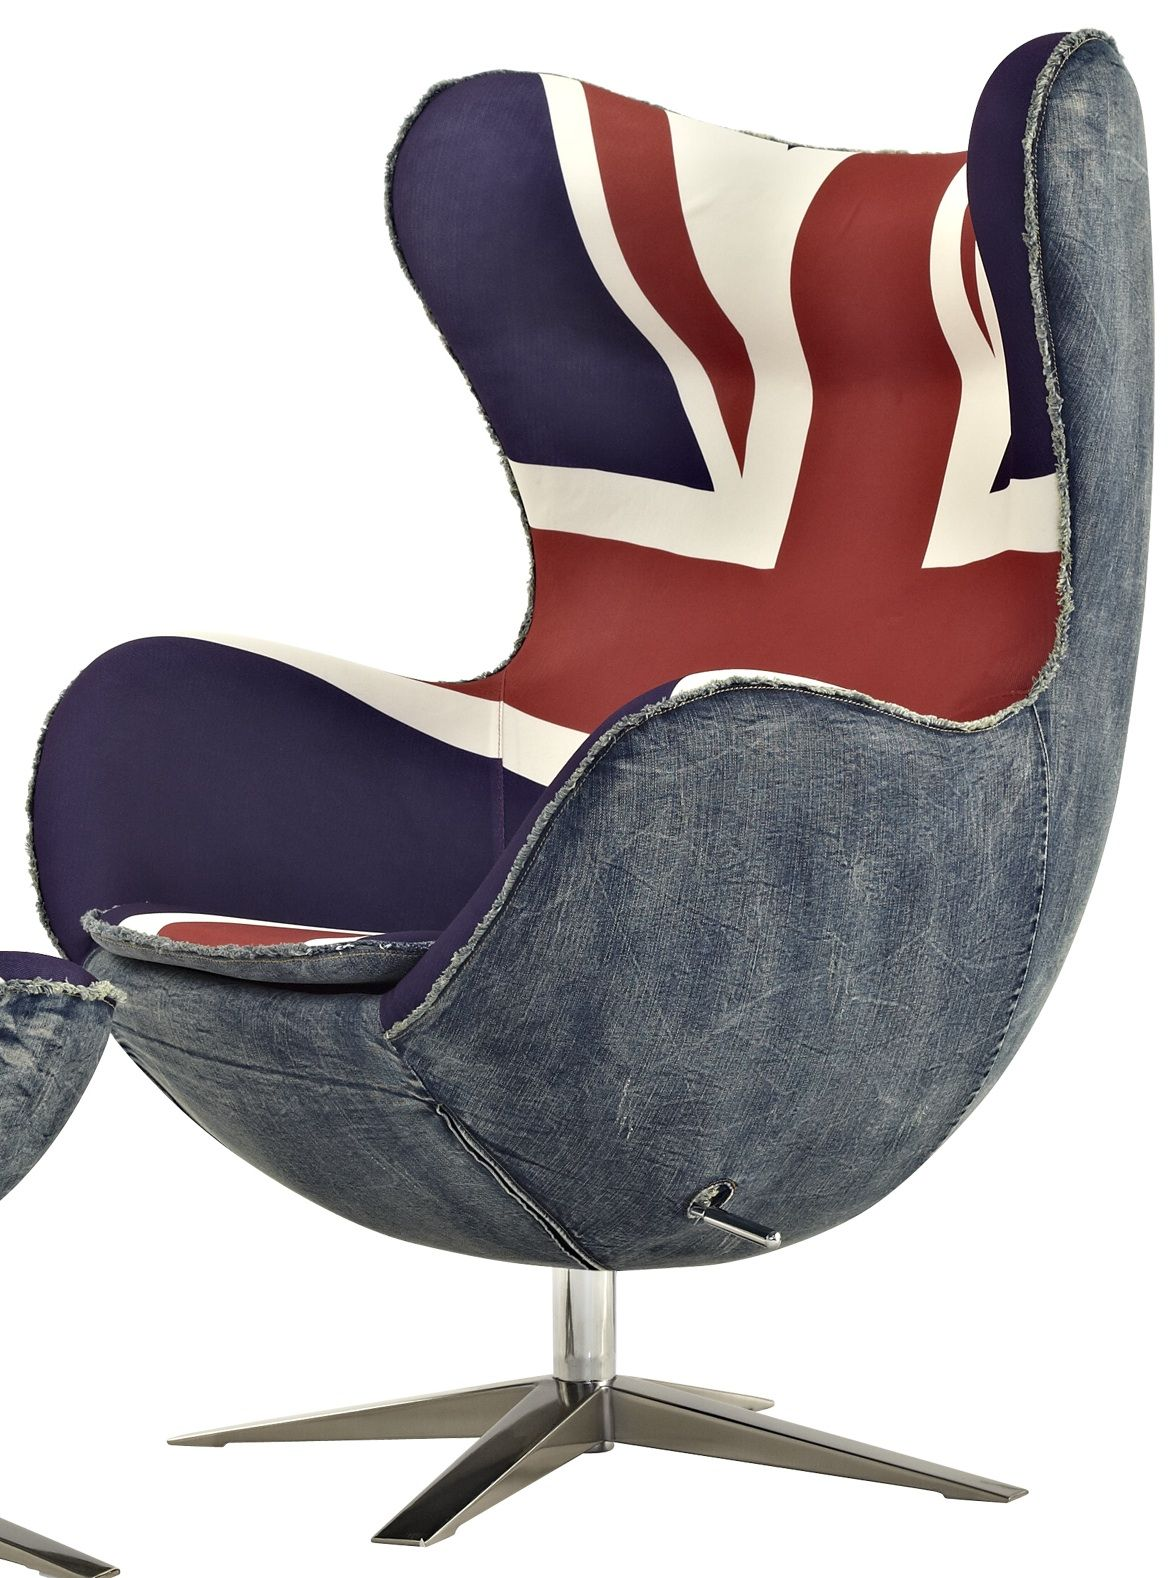 Affordable Egg Chair British Egg Chair Chairs Pinterest Egg Chair Eames